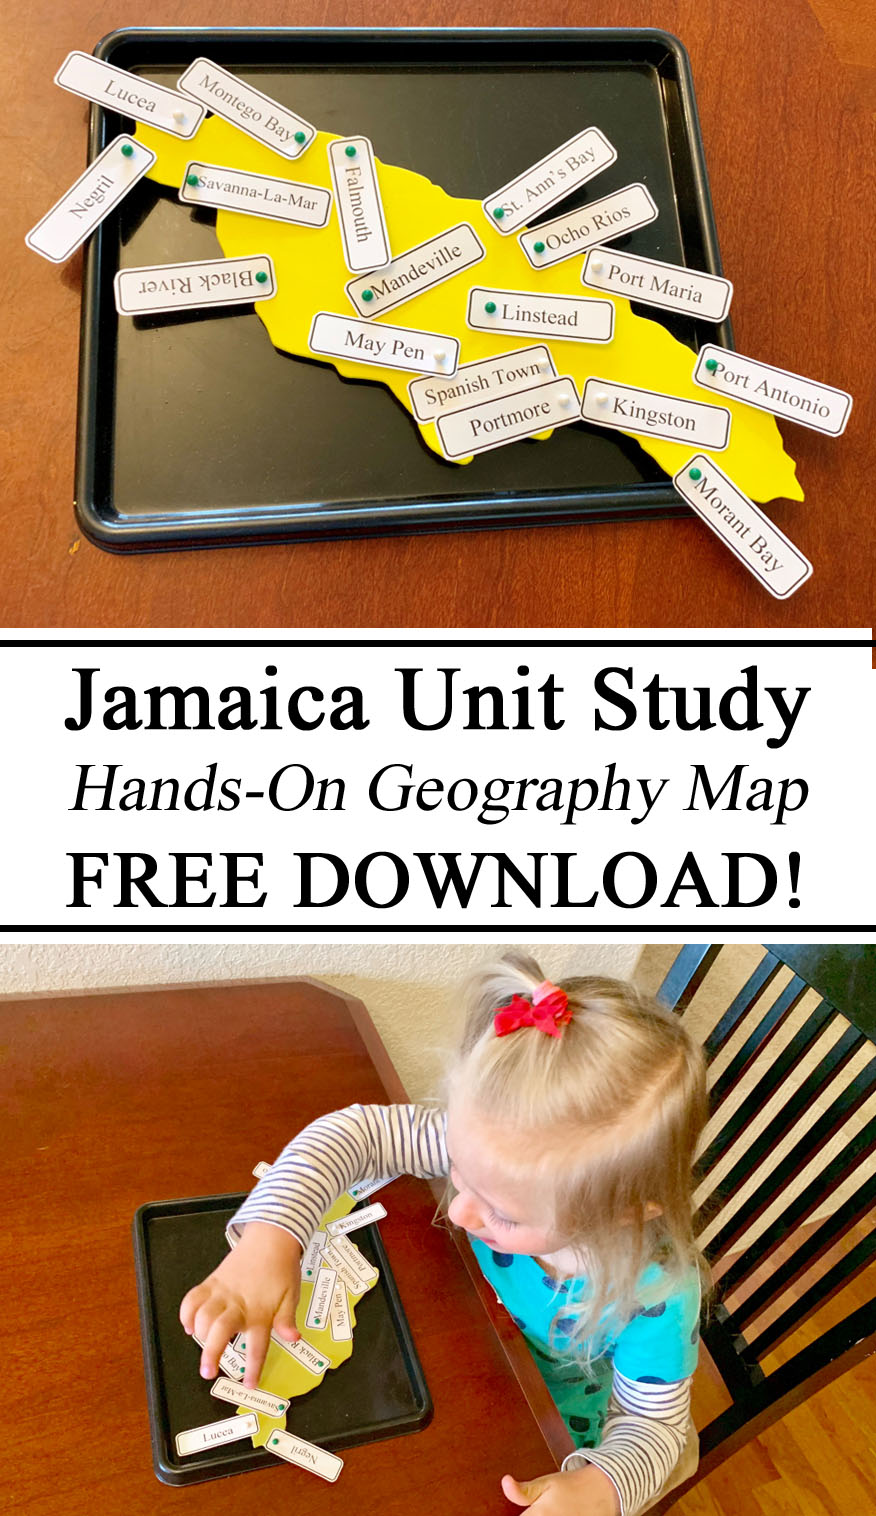 Geography, Homeschooling, Homeschool, Montessori, Inspired, Ideas, Hands on Learning, Free Resources, Printables, Download, Country Towns City Names, Map Pins, Interactive, Learning about Jamaicans, Waldorf, Unschooling, Early Childhood Education, Ideas, Teachers, Parents, Caregivers.